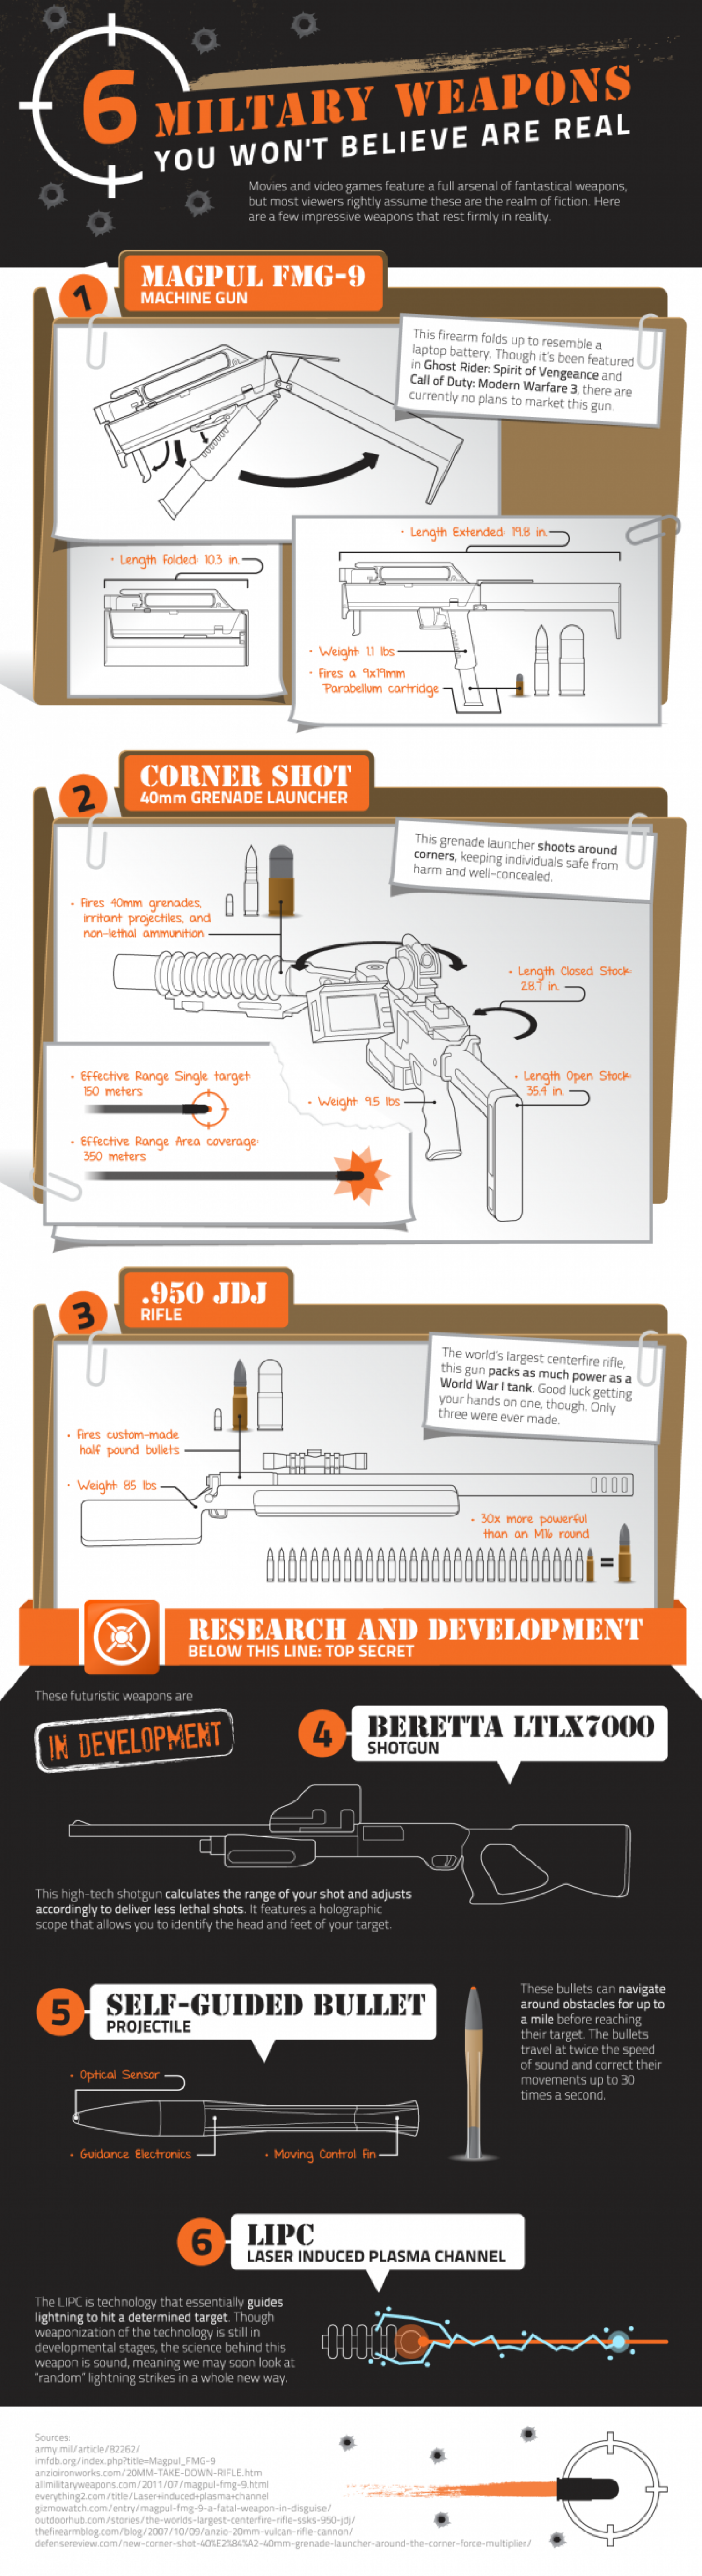 6 Military Weapons You Won't Believe Are Real! Infographic